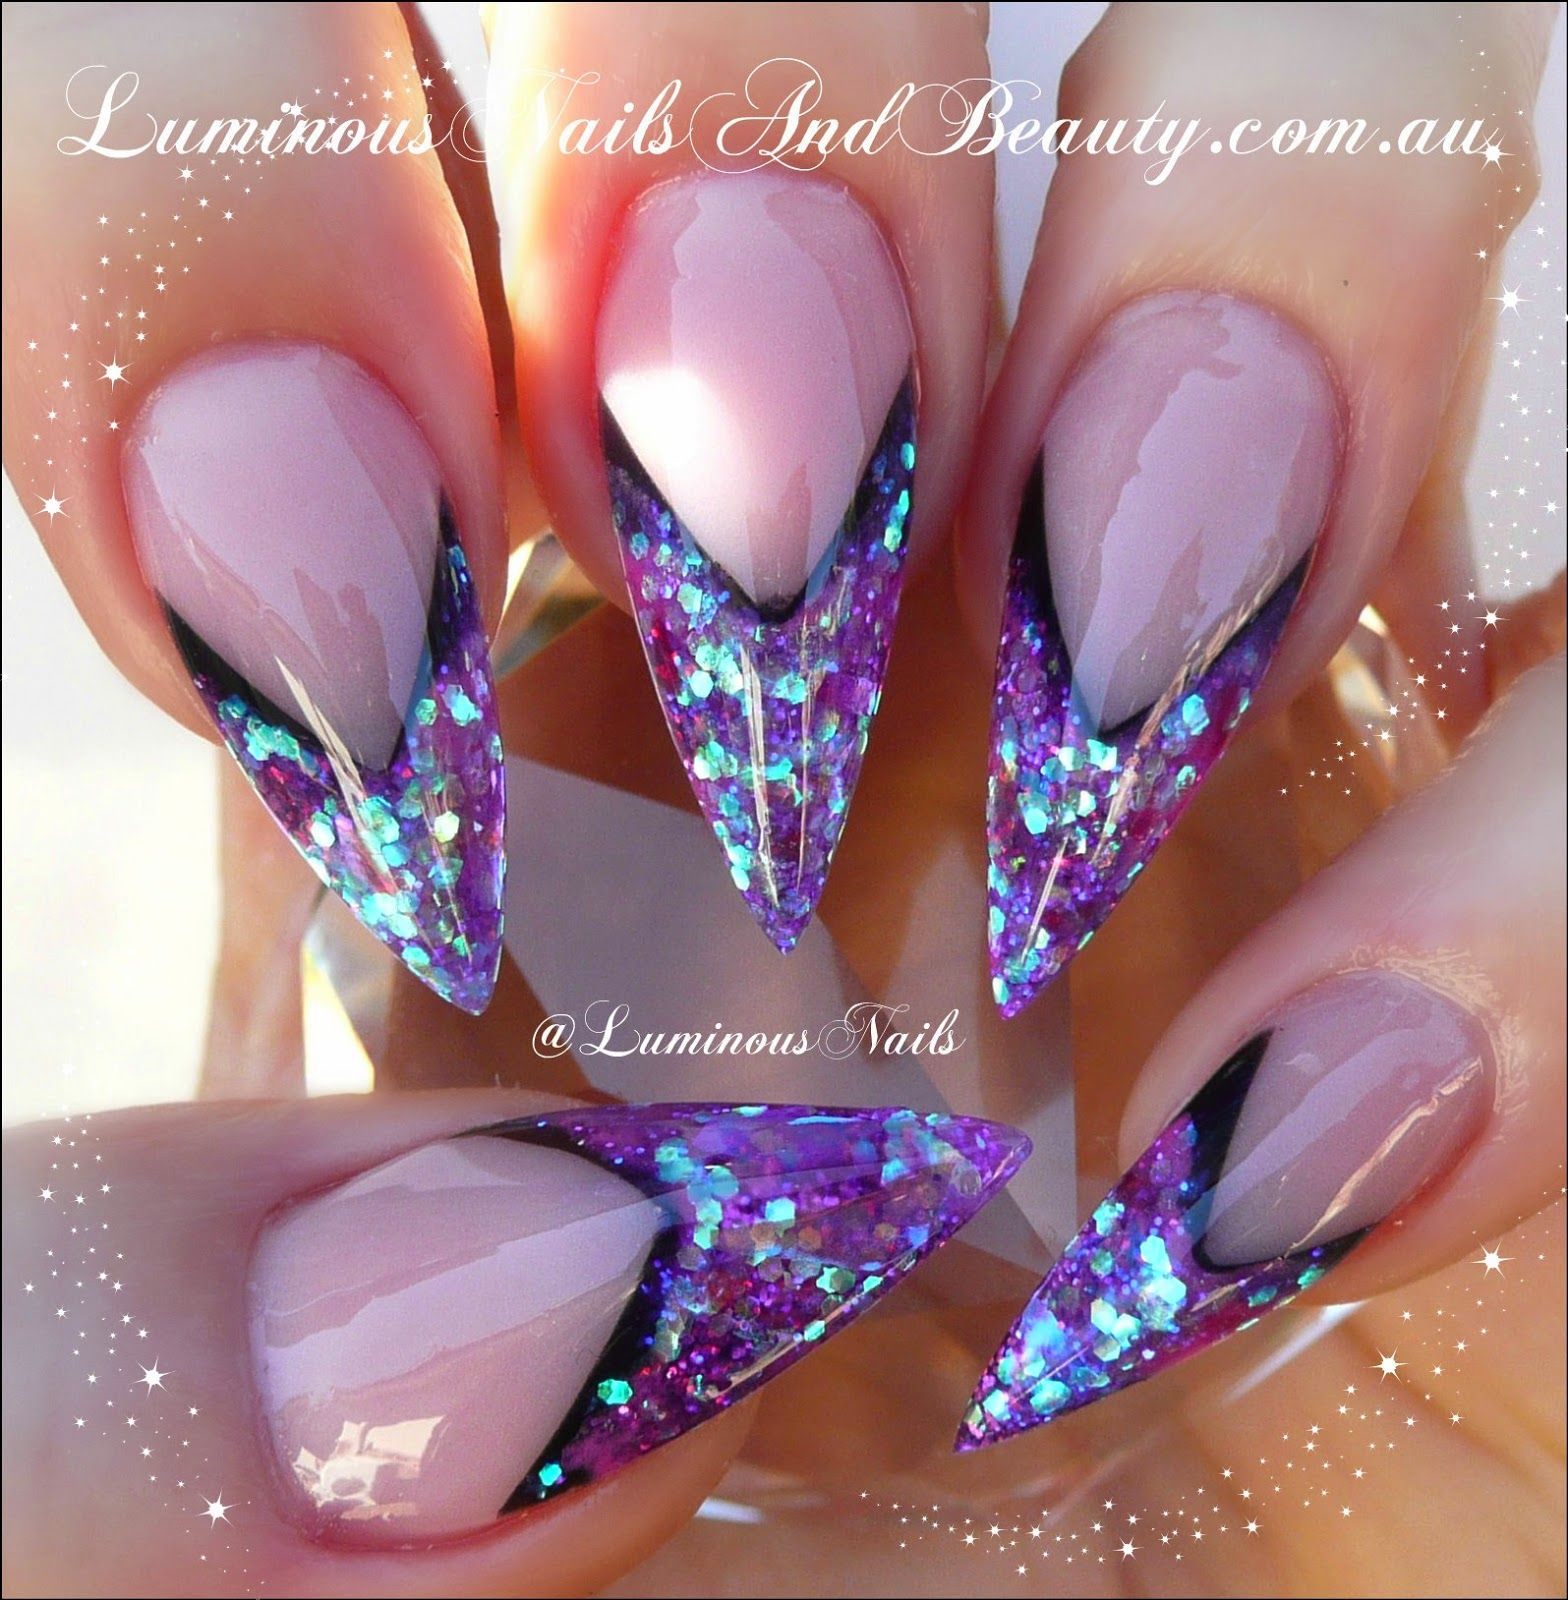 Luminous Nails: Stiletto Edge Nails! | Cool nail art | Pinterest ...